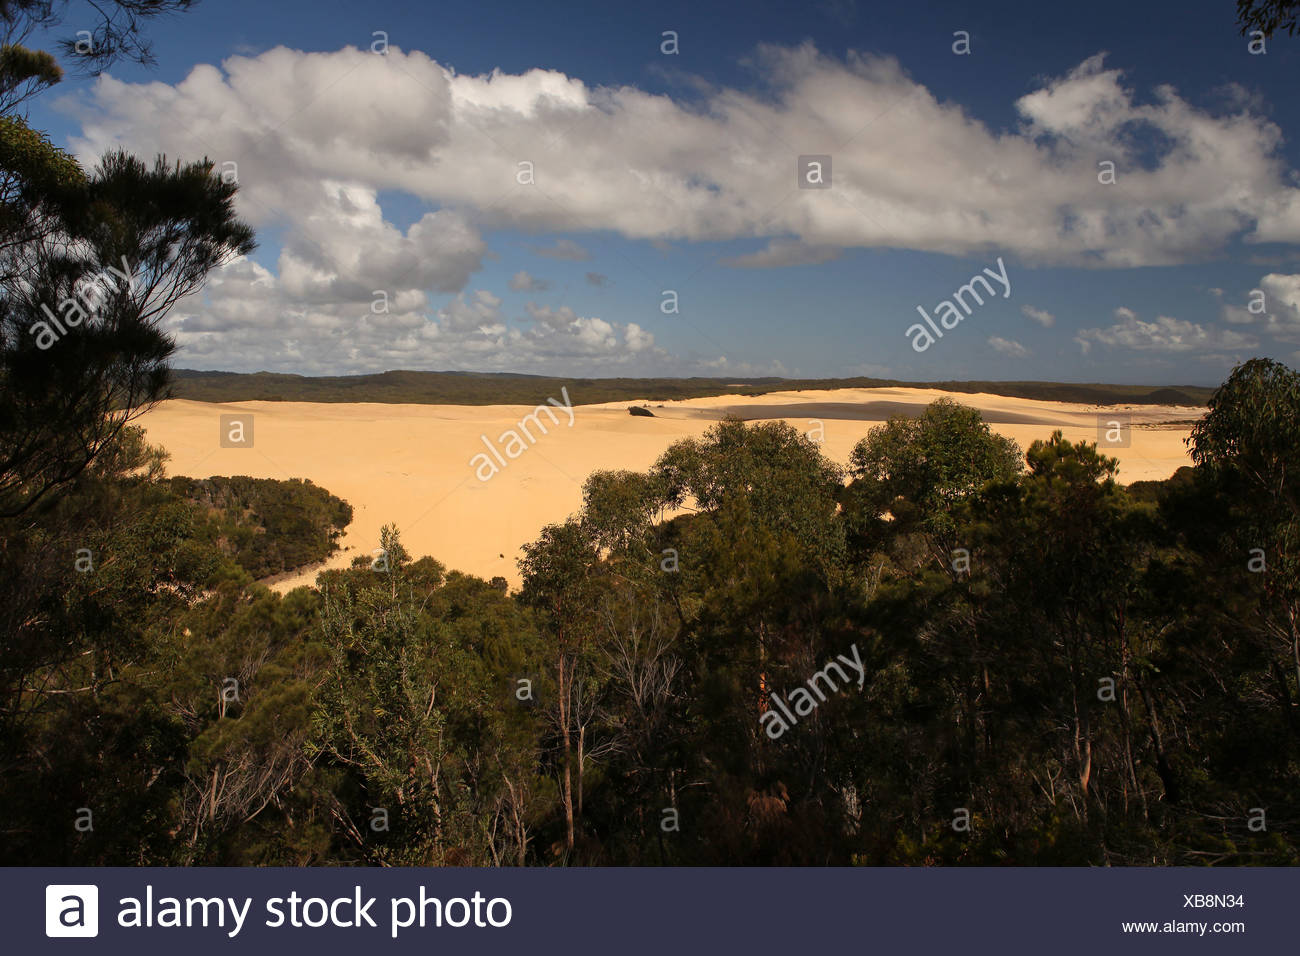 Sand dune, Sandblow, dune, sand, island, primeval forest, trees, Fraser Island, Queensland, Australia, view, edge out, wind, clo - Stock Image